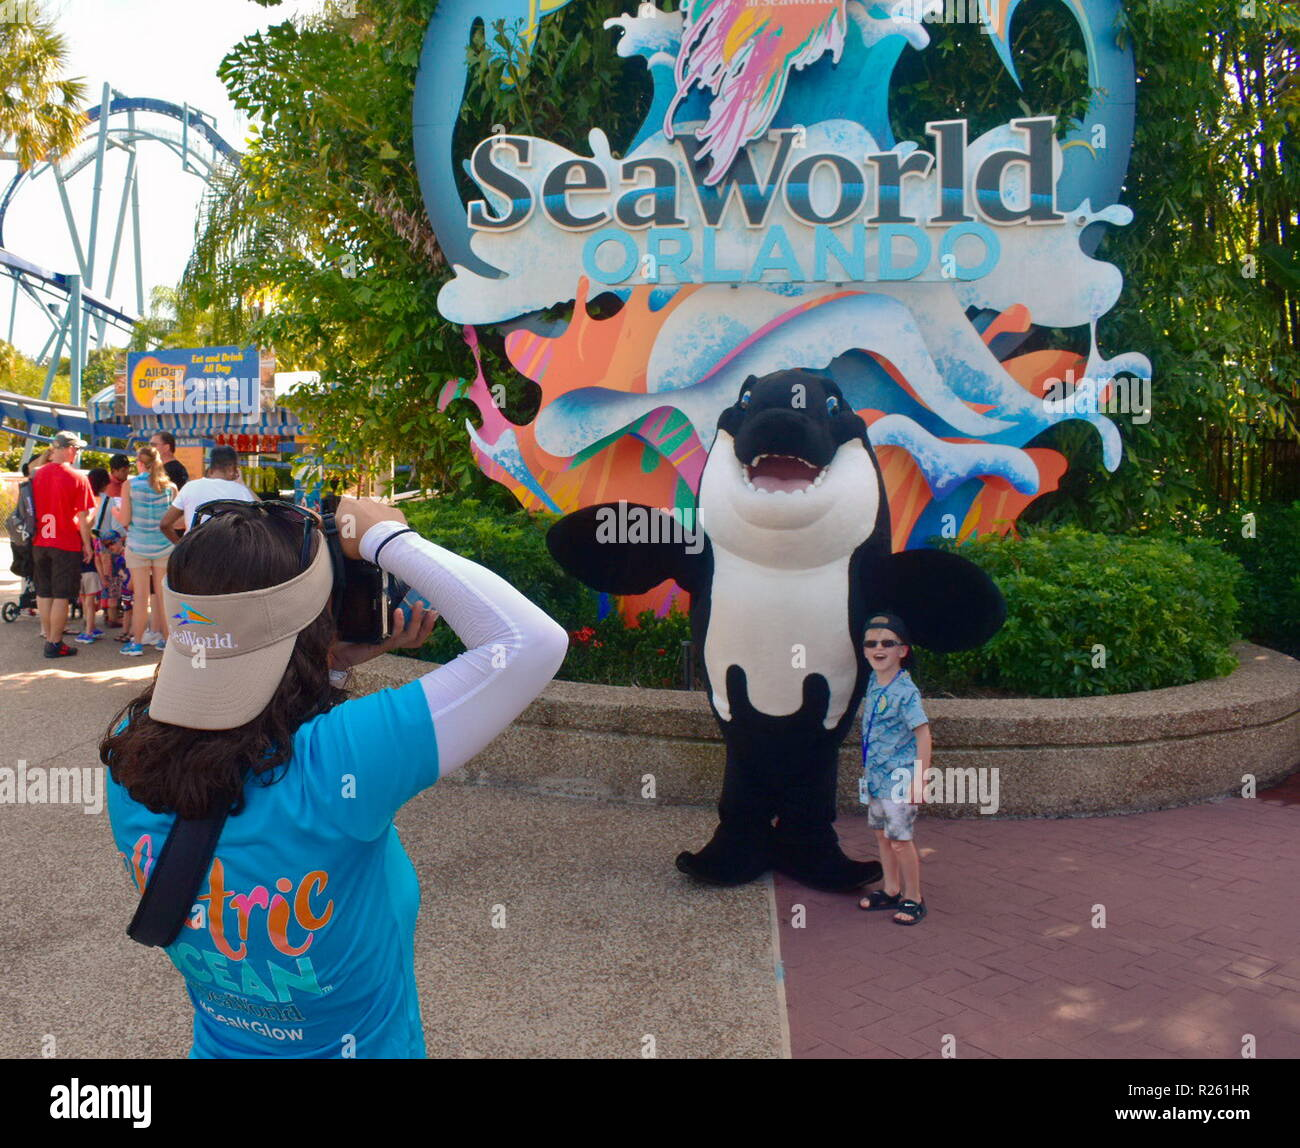 Orlando, Florida. October 26, 2018  Girl taking picture of nice boy with whale character at Seaworld Theme Park. - Stock Image